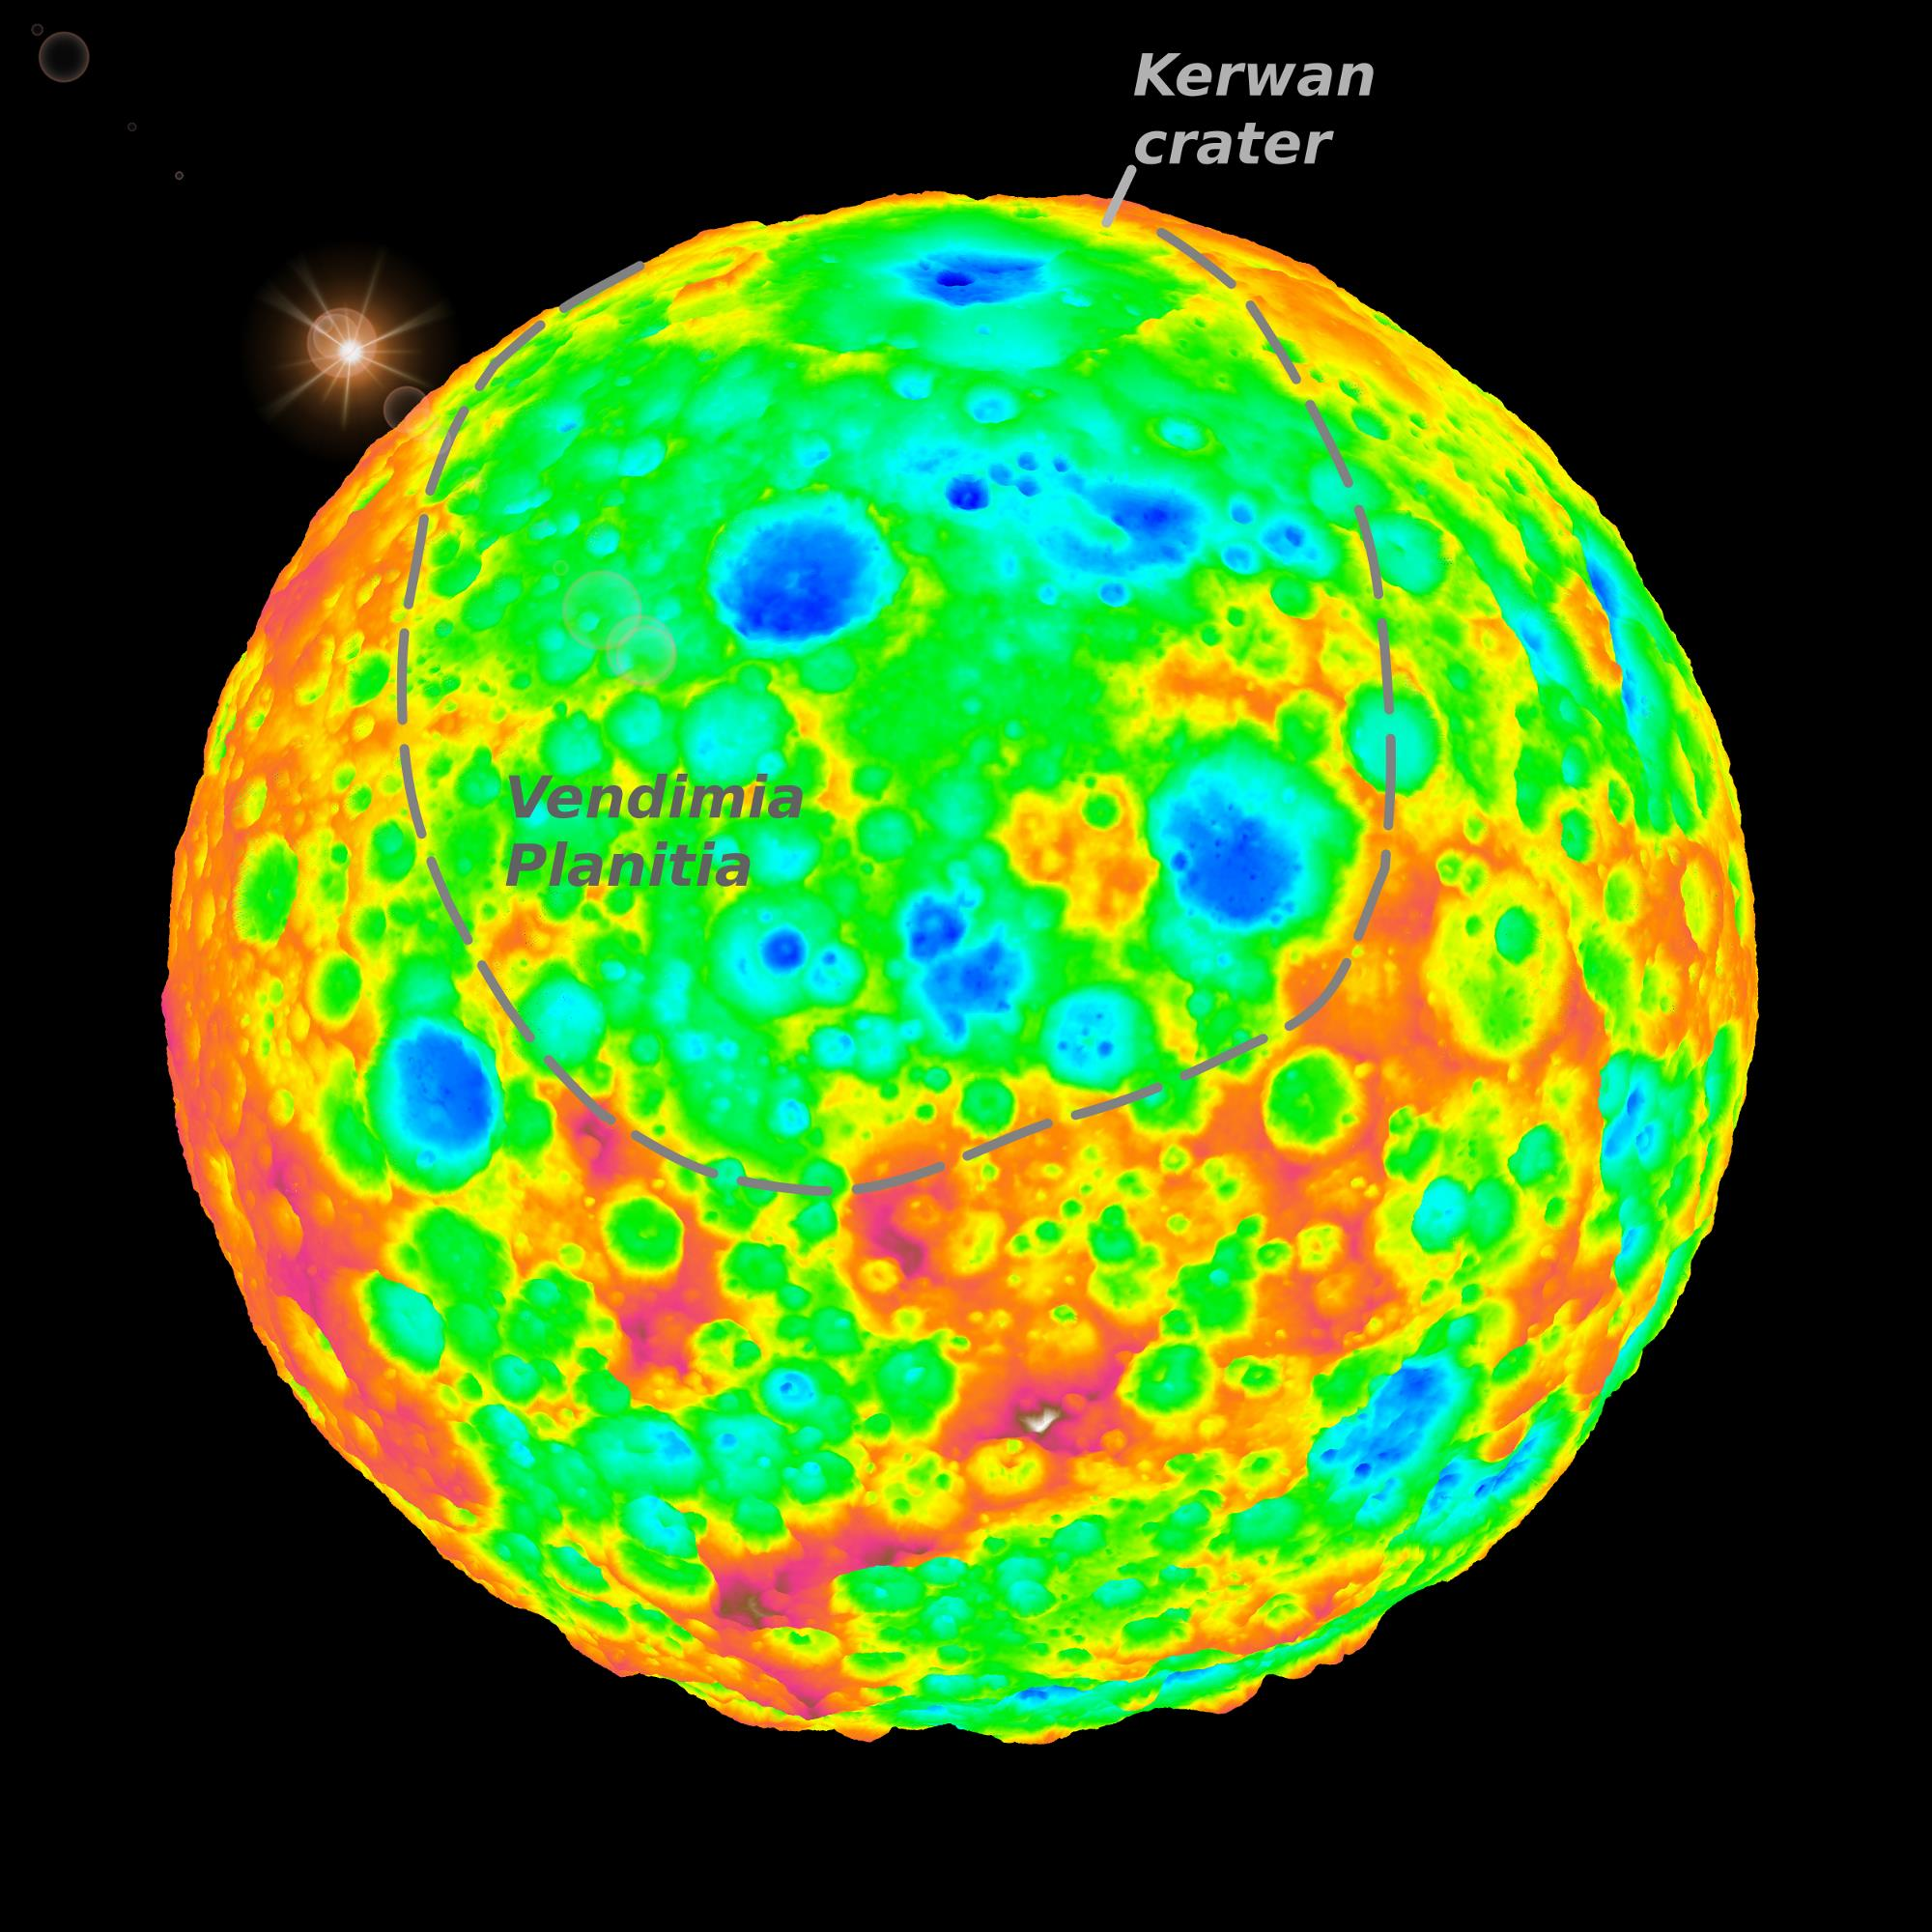 A view of Ceres' largest well-preserved 170-mile (280-km) impact crater, Kerwan, near the limb. The color coding indicates elevation (blue: low; red: high) exaggerated by a factor of 3.